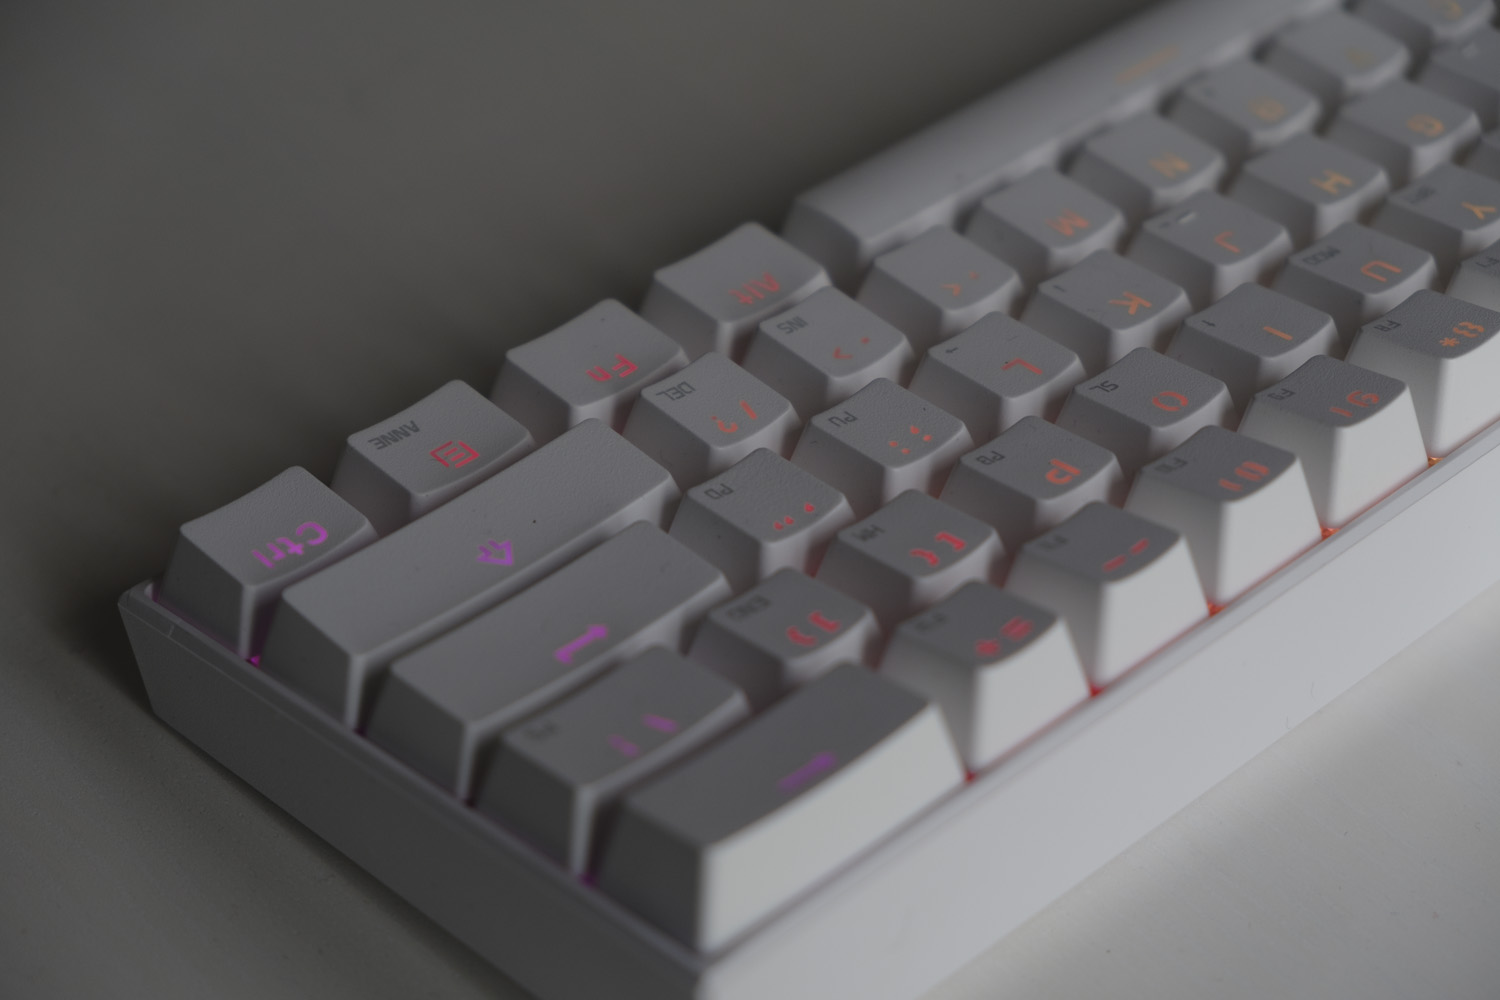 Obins Anne Pro review: the best 60% keyboard I've ever used - Review